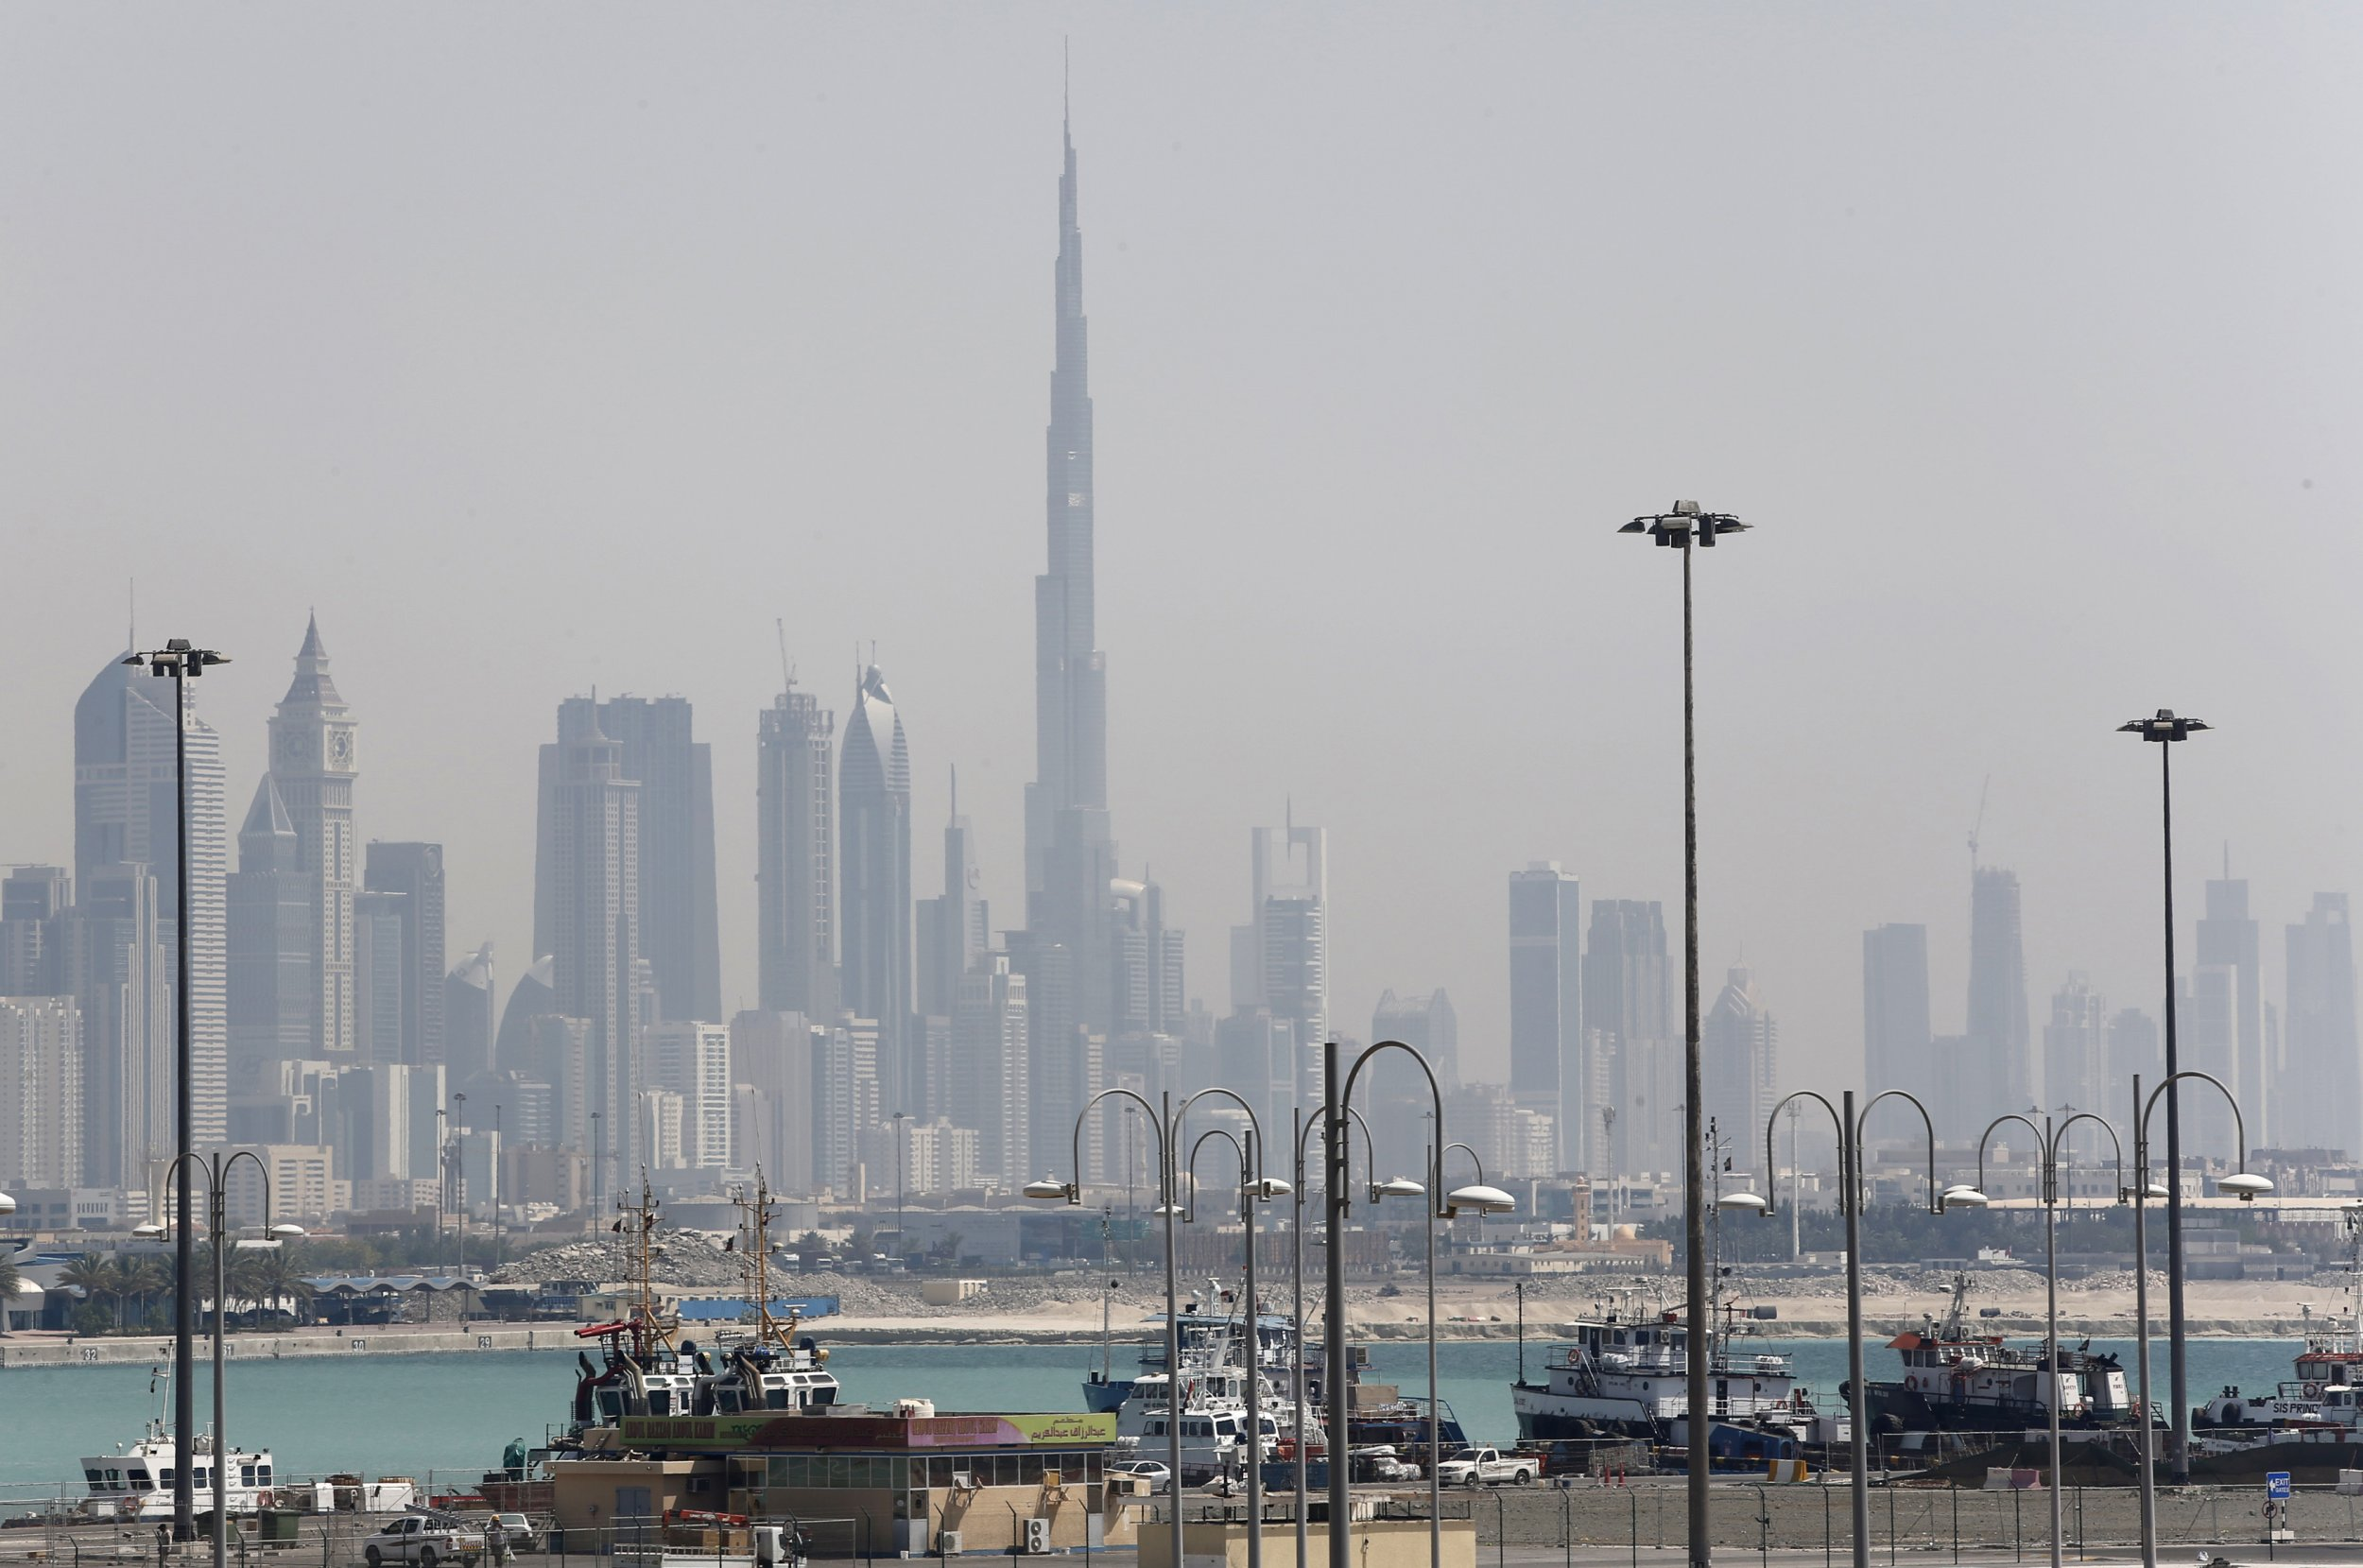 The Dubai skyline is pictured.